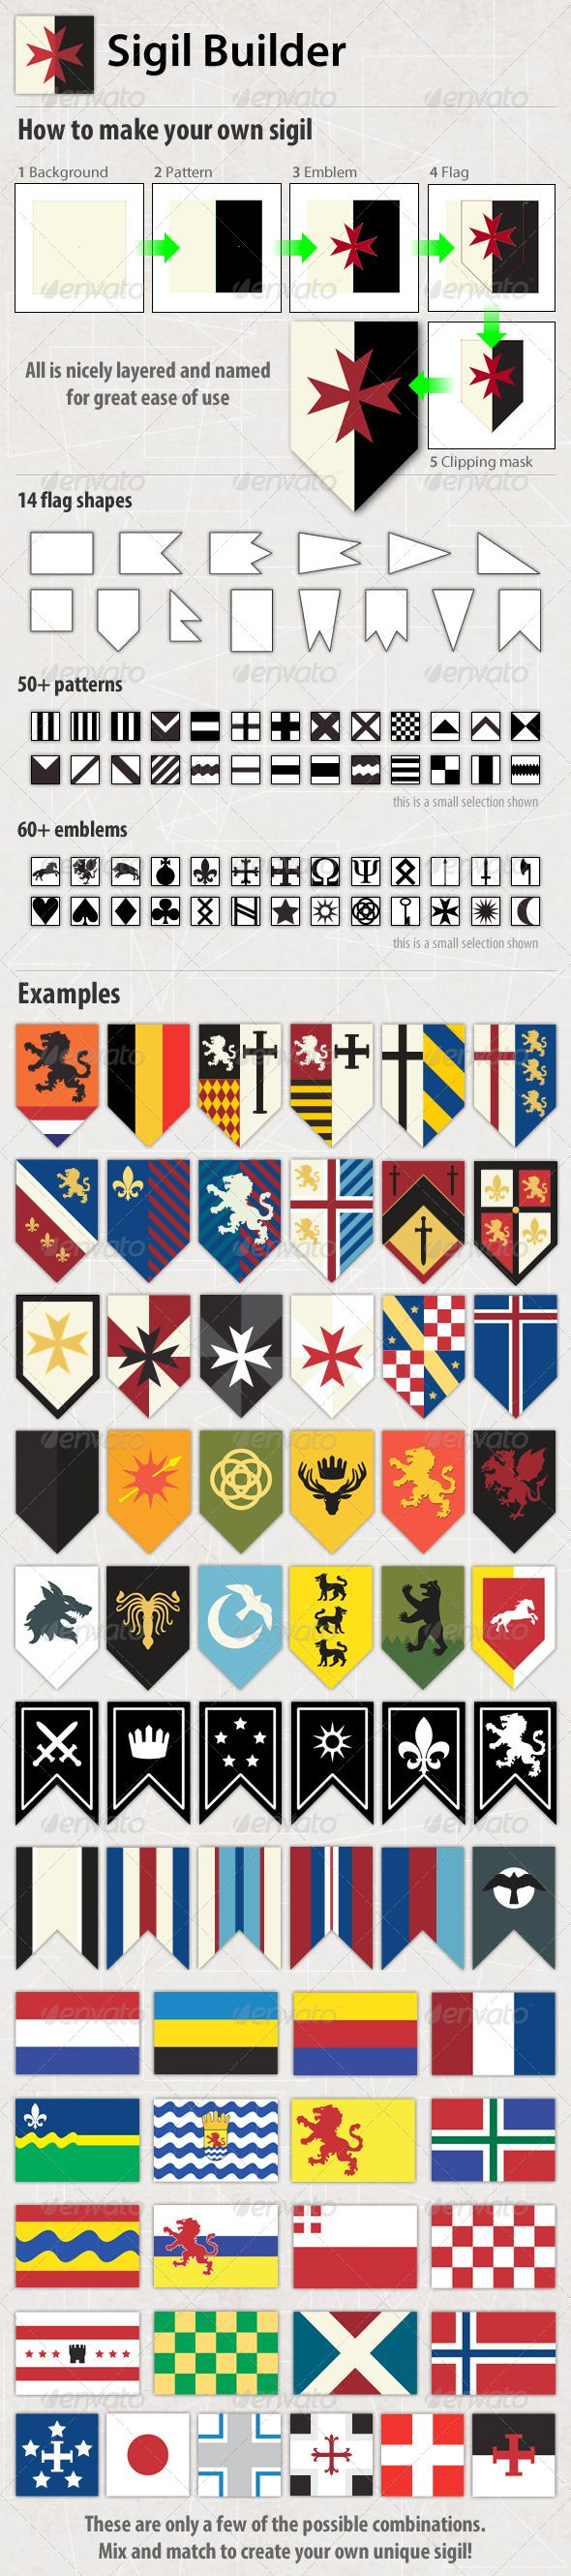 Sigil Builder  #GraphicRiver      Make your own sigil! Select the shape and color of the flag. Choose emblems and patterns.   Emblem categories: animal, royal, sky, geometry, symbols, cards, zodiac, greek, weapons, runes Feel free to move/resize/rotate/duplicate/combine objects.